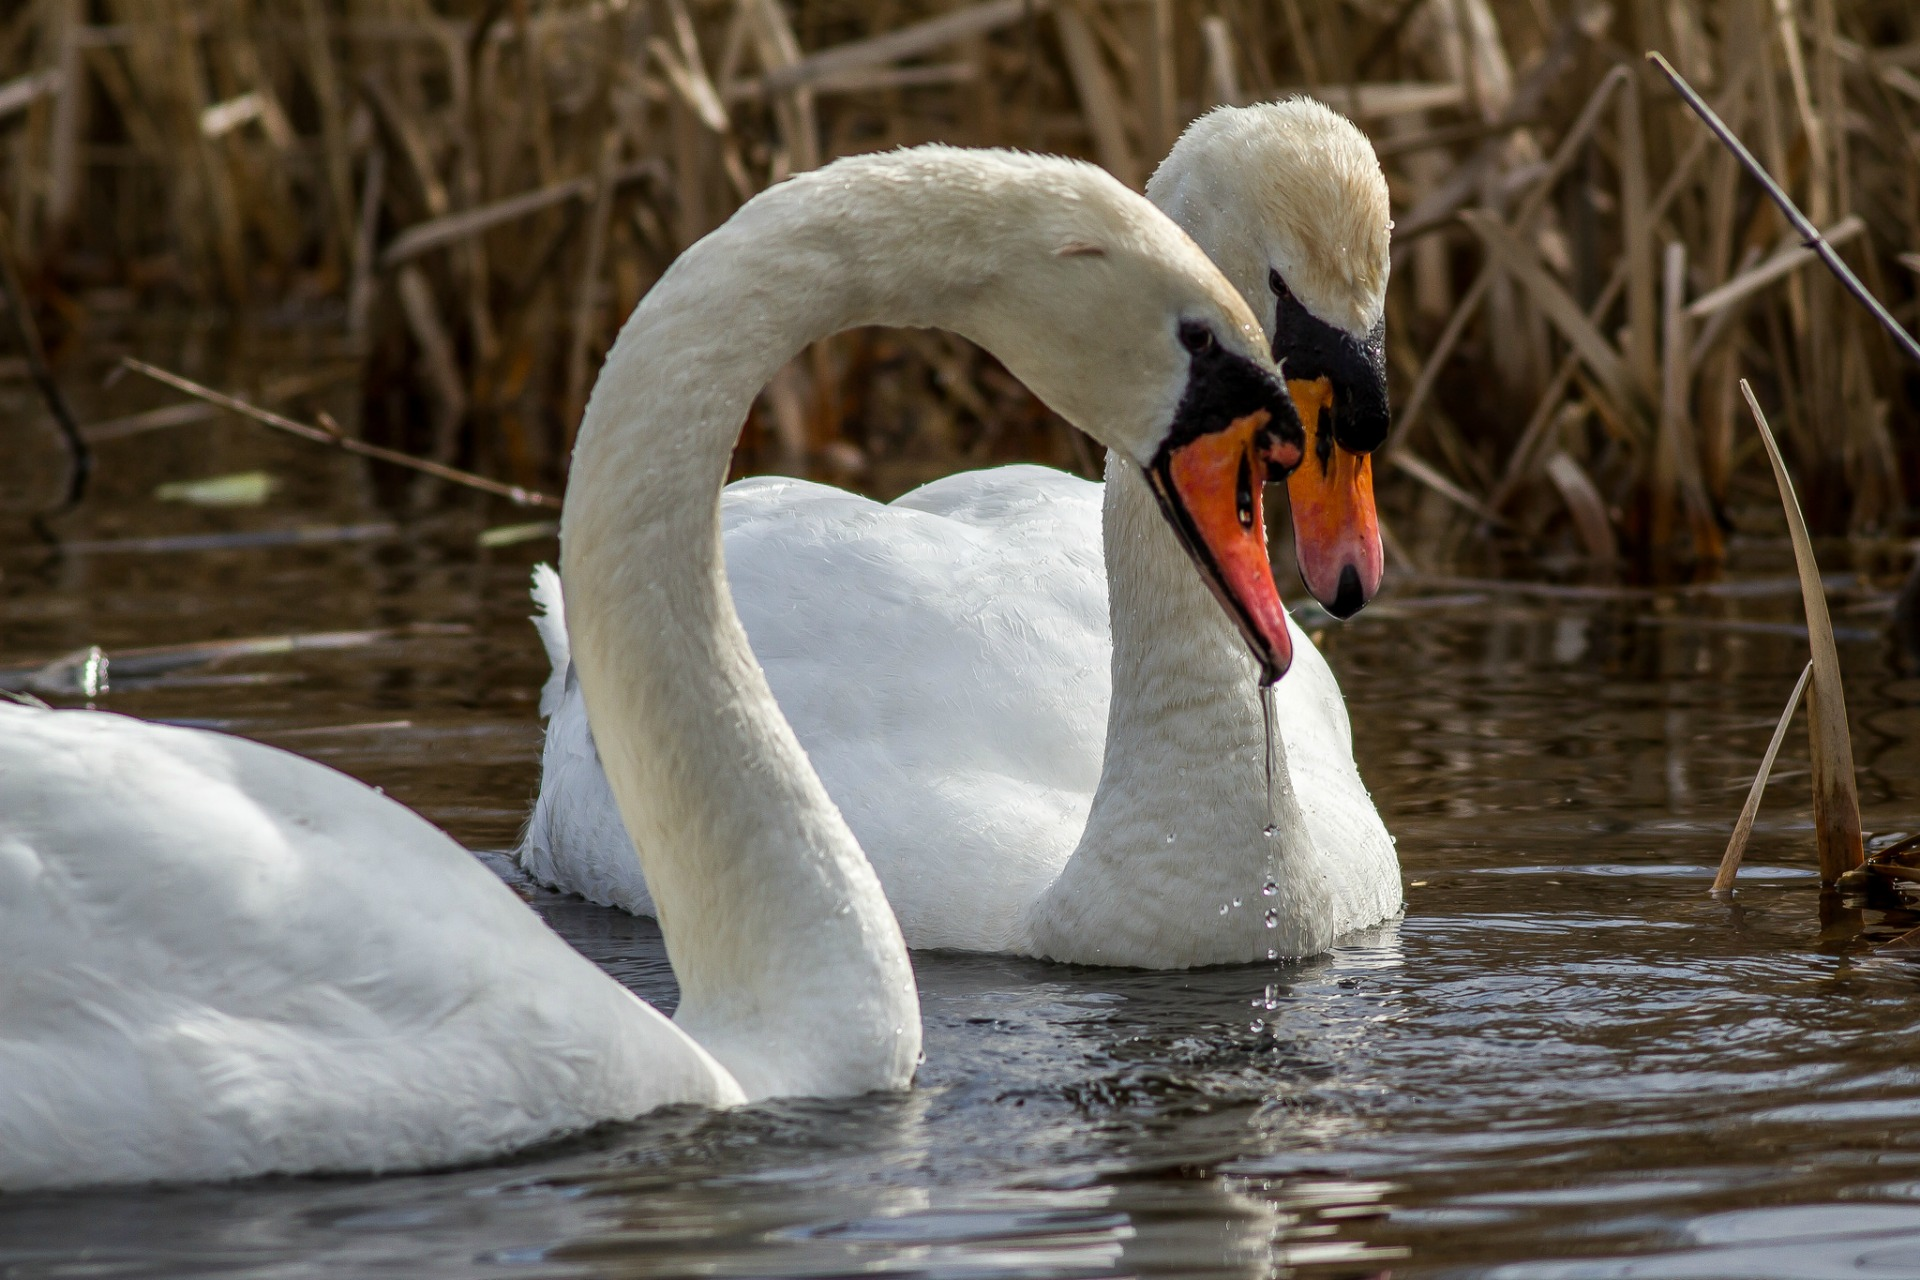 Should the mute swan be the UK's national bird?